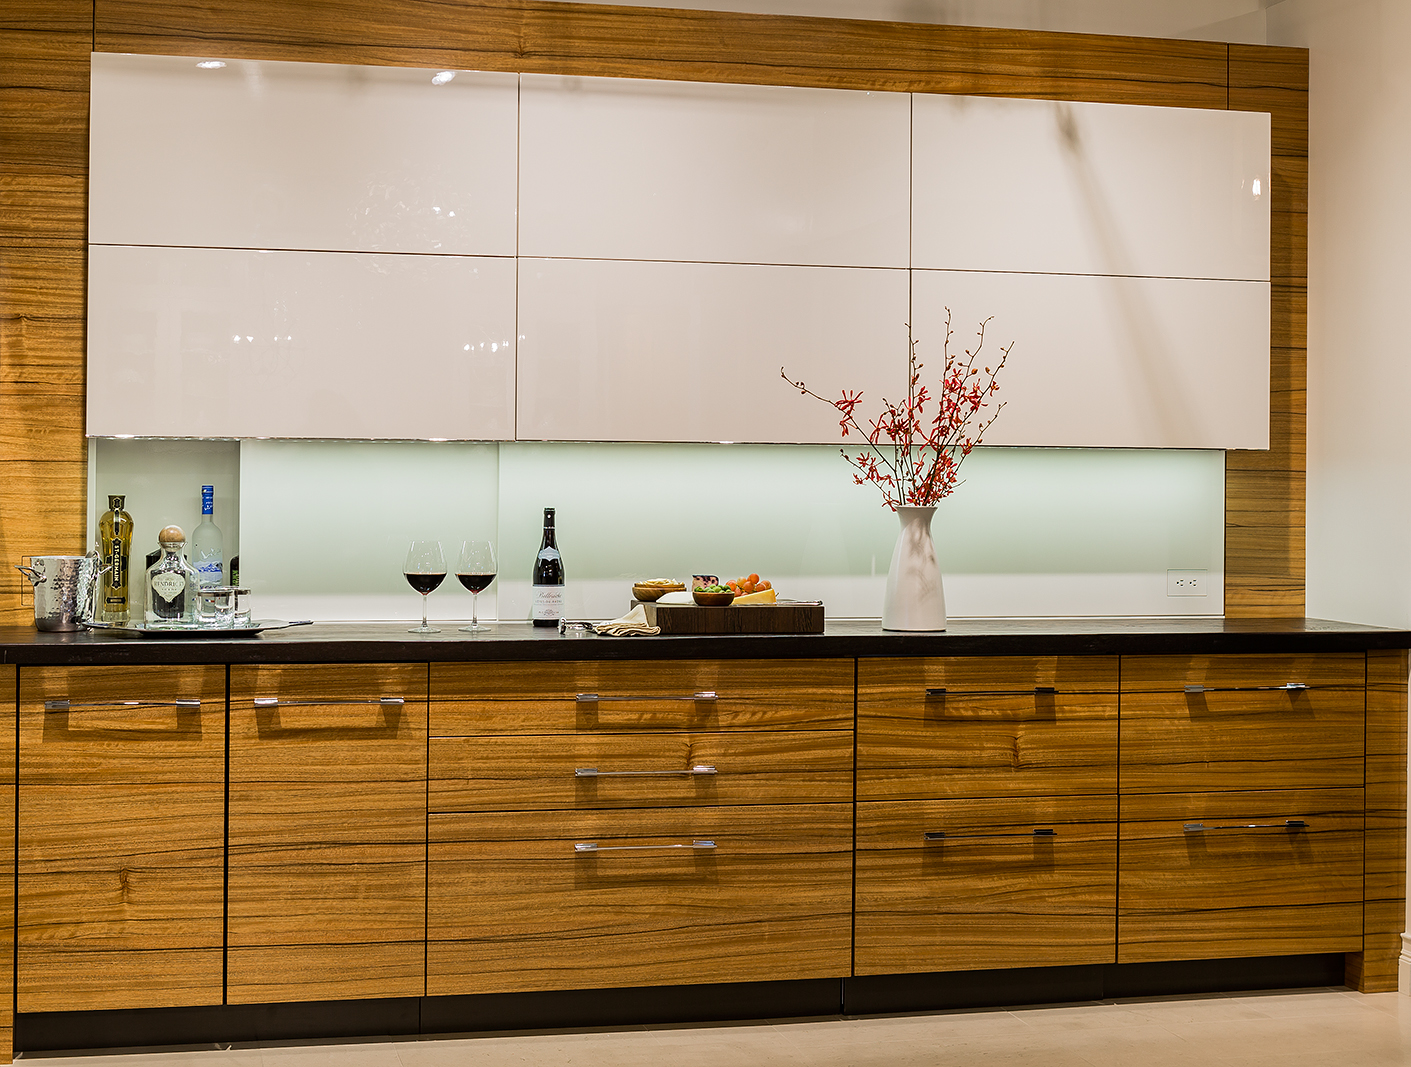 Wenge Hand Planed Wood Countertop designed by Venegas and Company